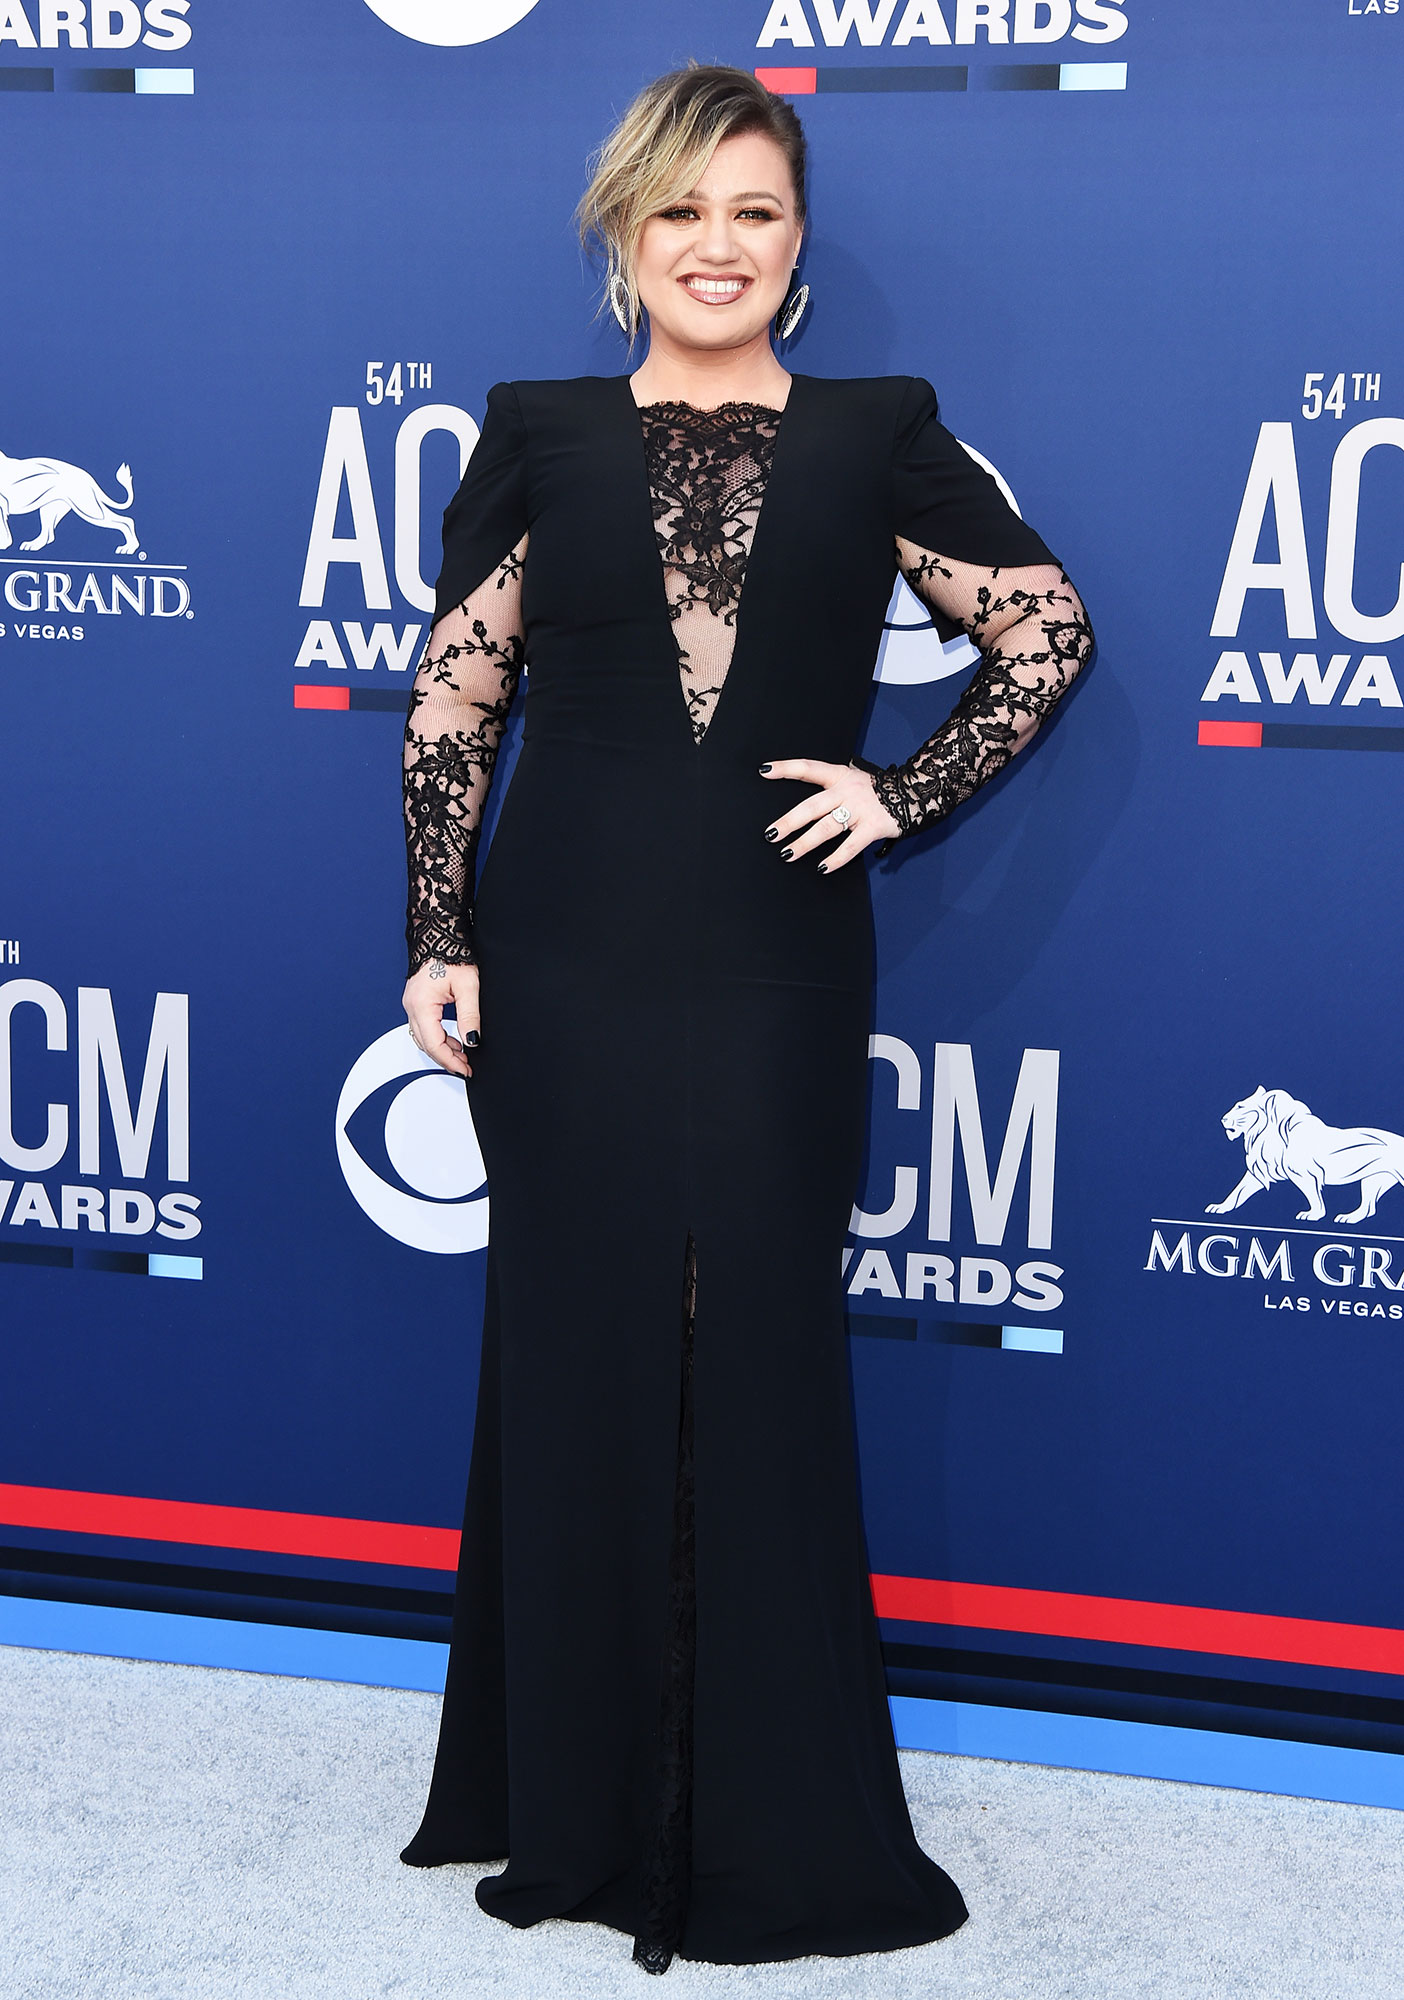 """Kelly Clarkson The Best Looks From the Country Music Awards Red Carpet - Giving Us a bit of edge, the """"Because of You"""" singer looked gorgeous in a black ballgown with lace details on the sleeves and neckline."""